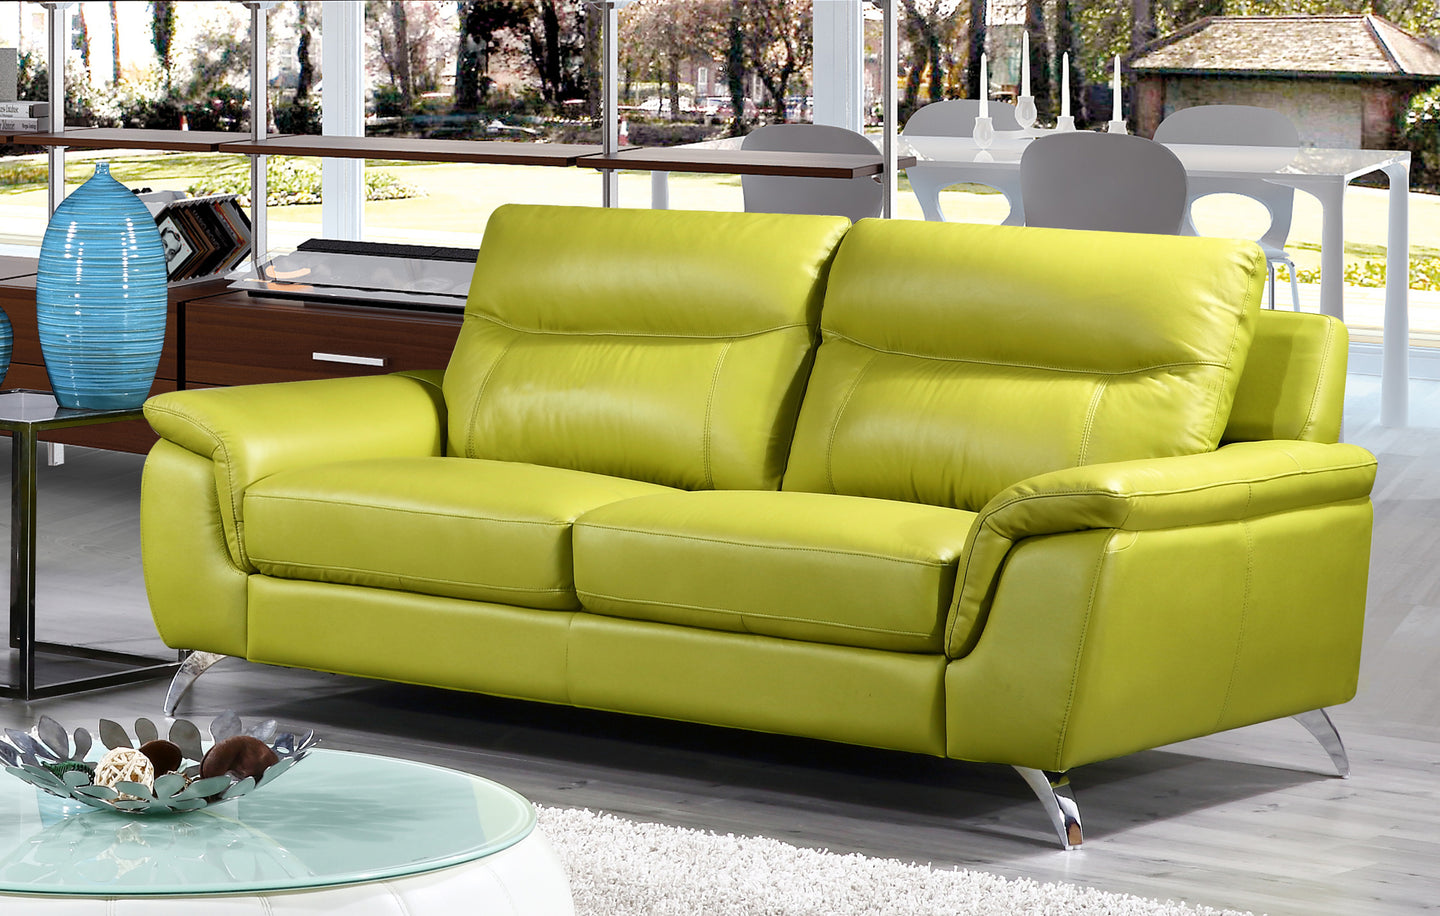 Cortesi Home Chicago Genuine Leather Sofa, Green